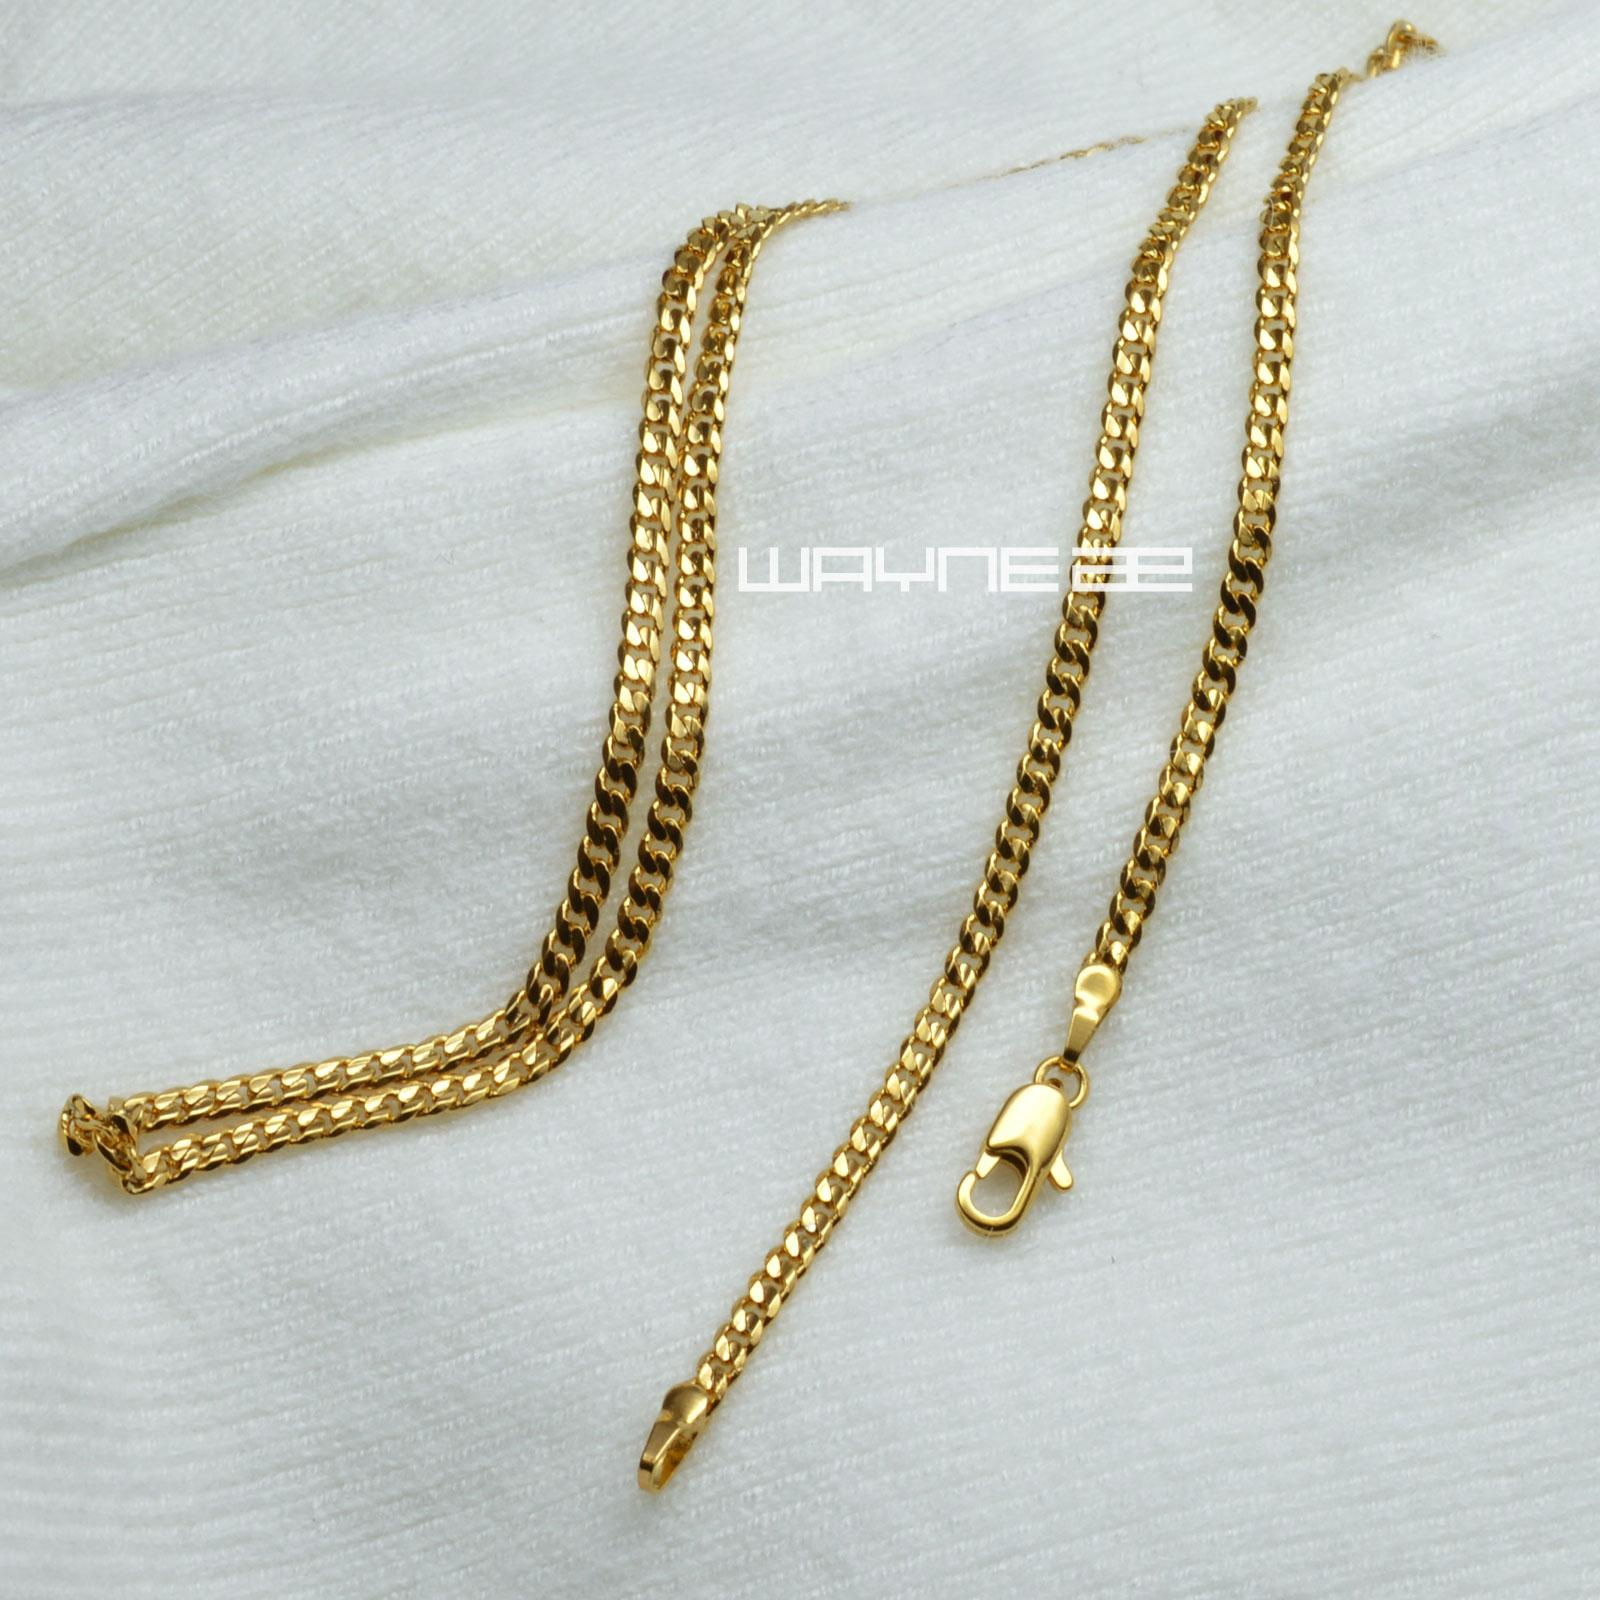 Elegant 18K 18CT Yellow Gold Filled GF 17.7 inch45cm Length Ladies Chain Necklace N316